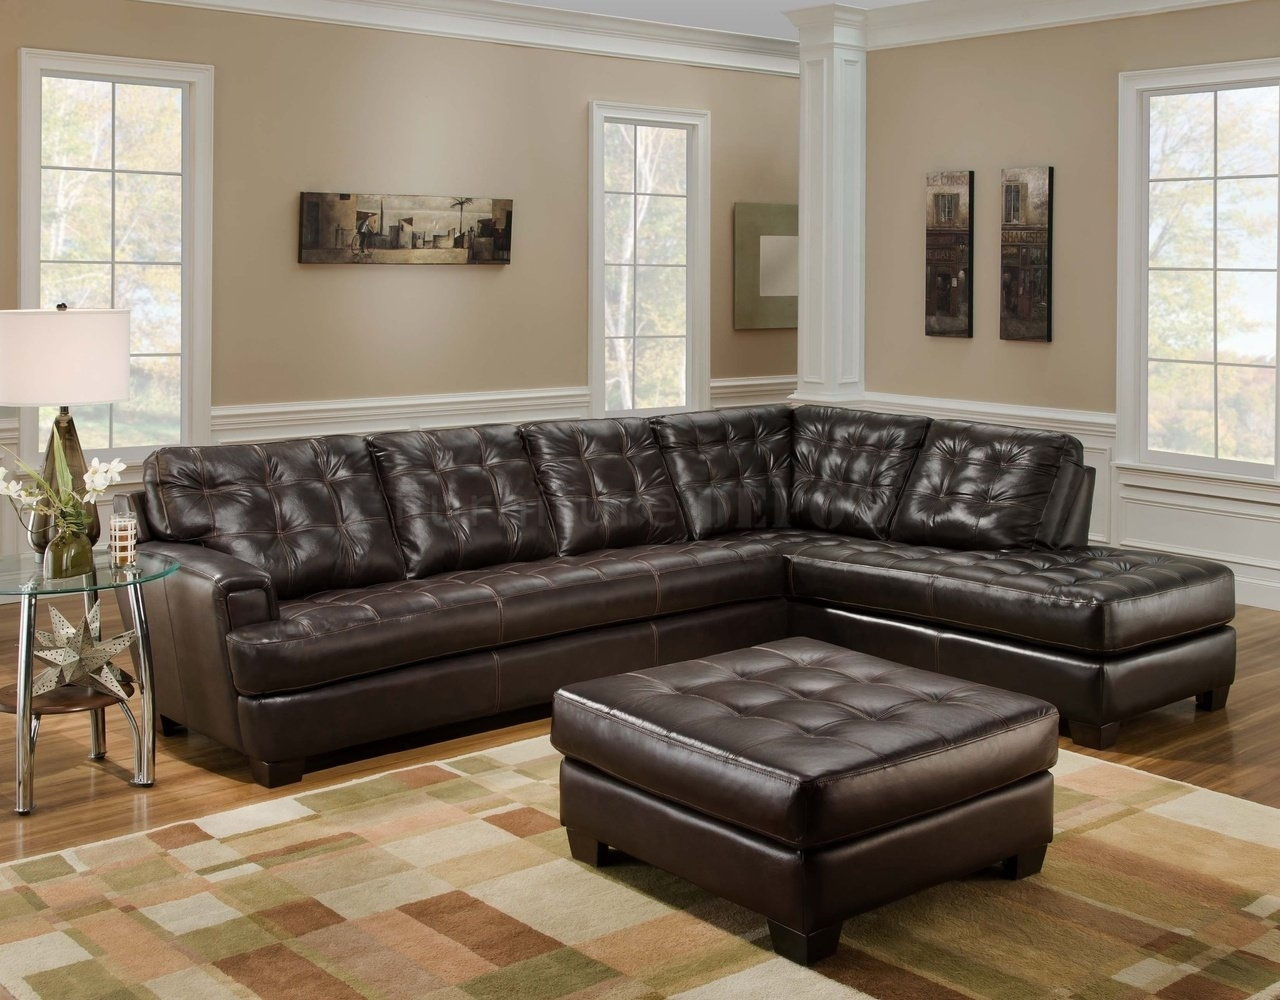 brown leather sectional sofa with chaise oxford bed 10 best ideas sectionals ottoman